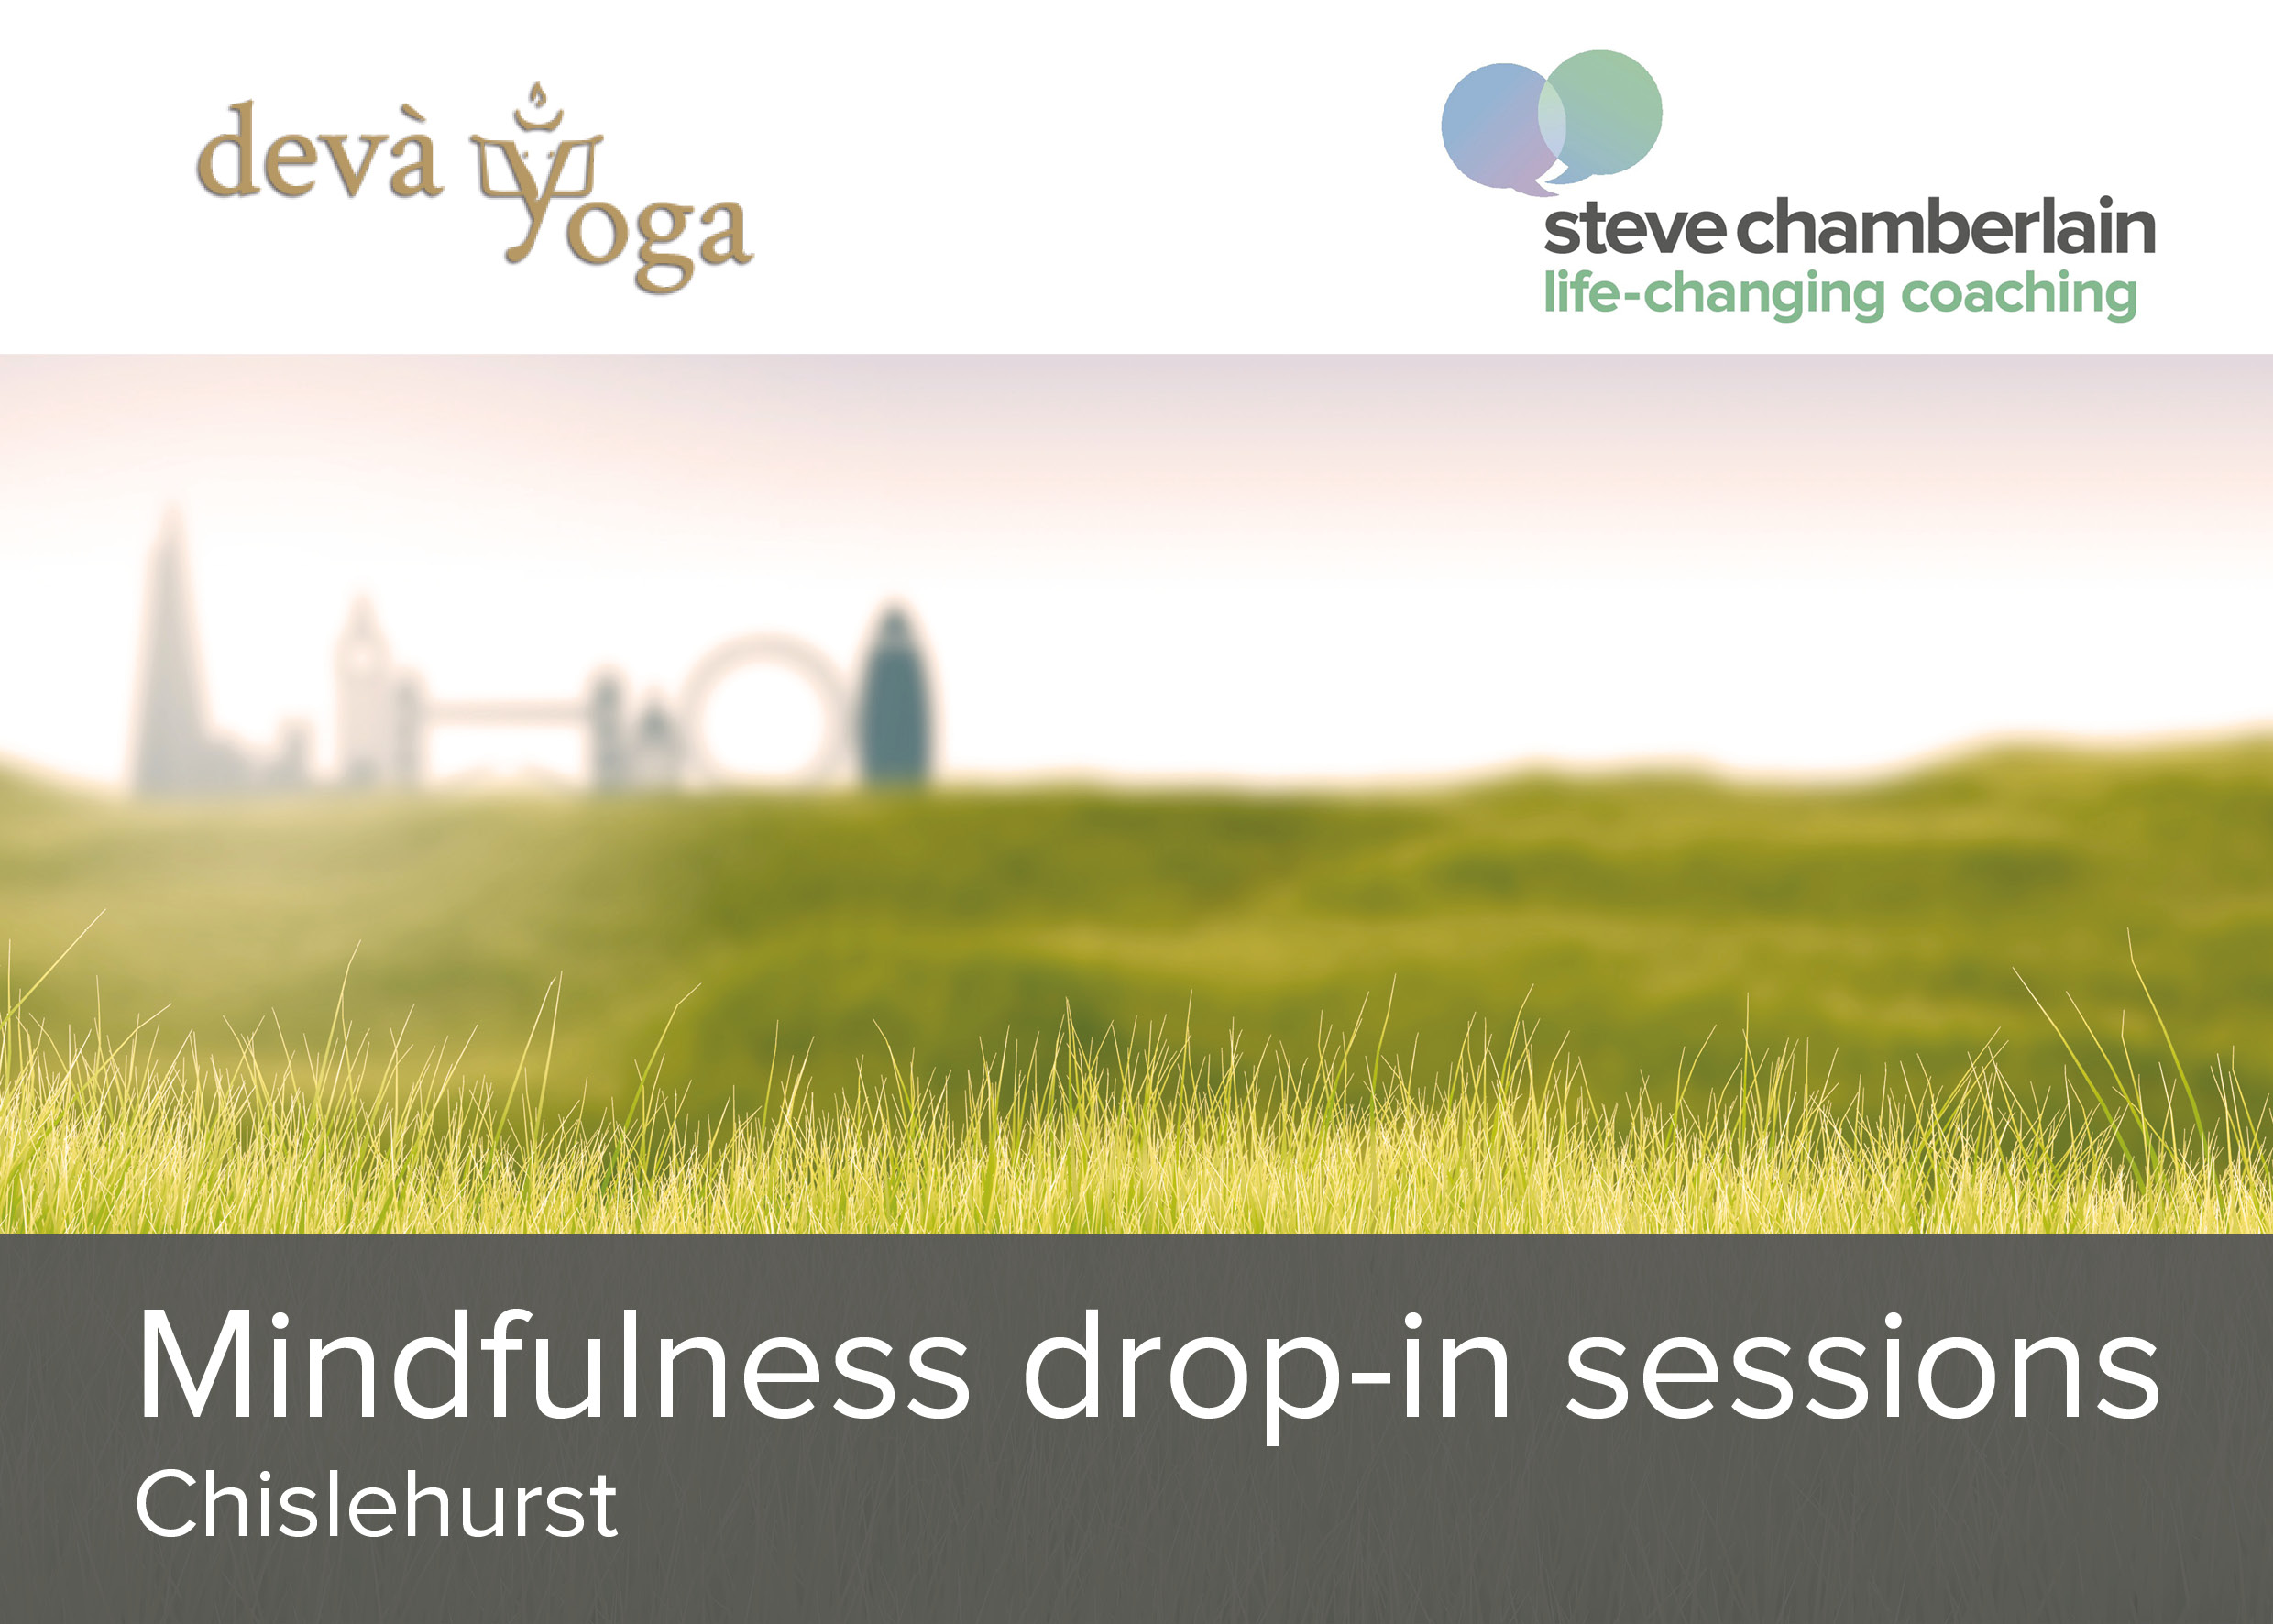 Mindfulness drop-in Chislehurst Deva Yoga Button 3.jpg